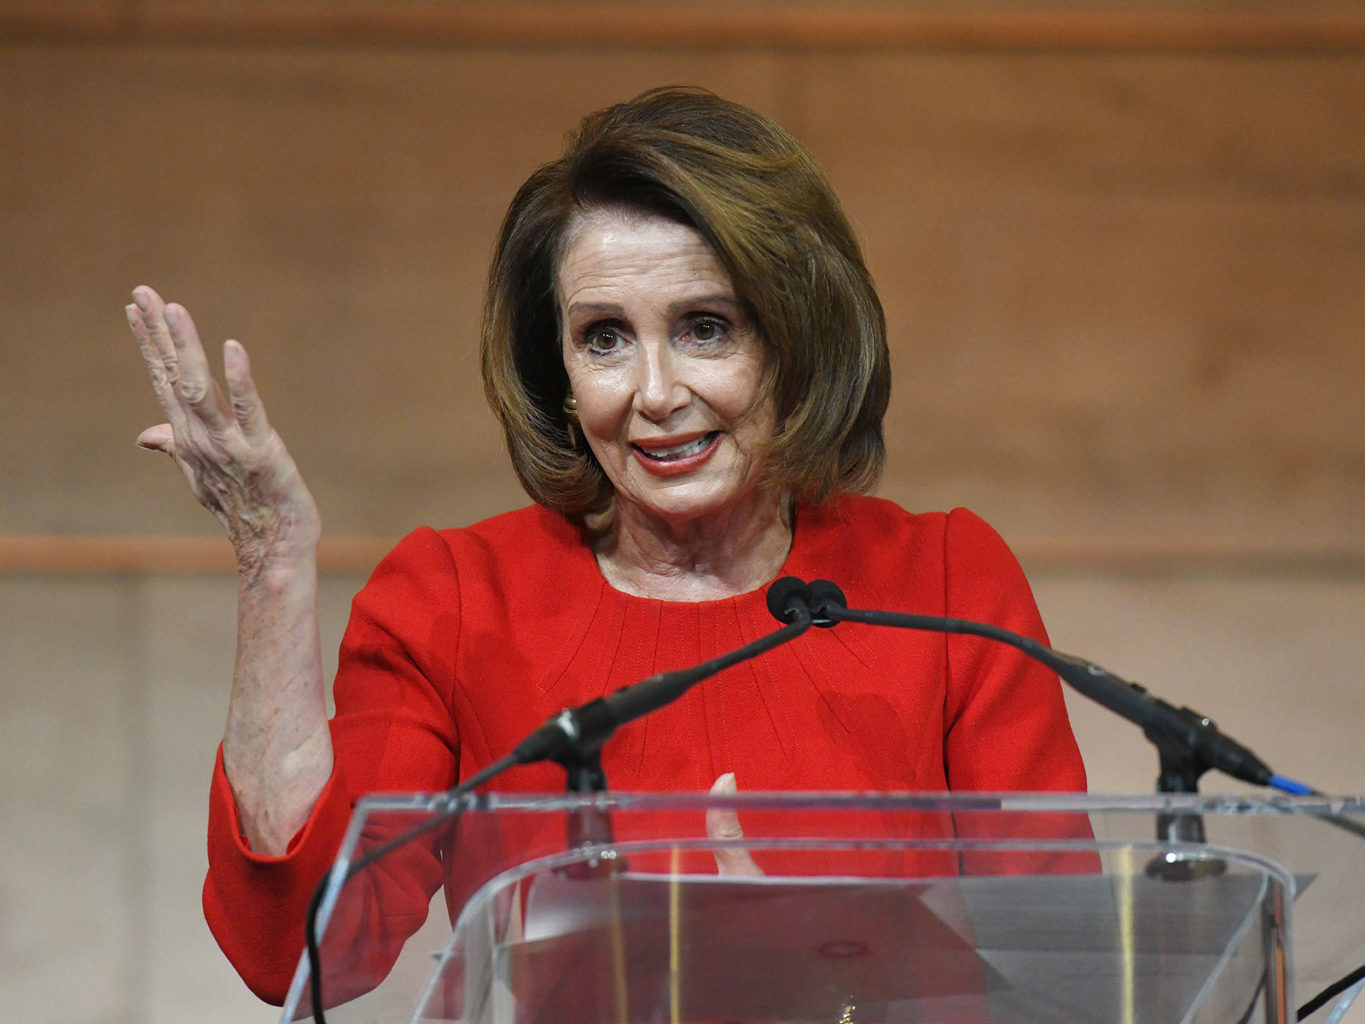 House Minority Leader Nancy Pelosi speaks during an event at the National Museum of American History on March 7 in Washington, D.C. (Olivier Douliery/Abaca Press/TNS)